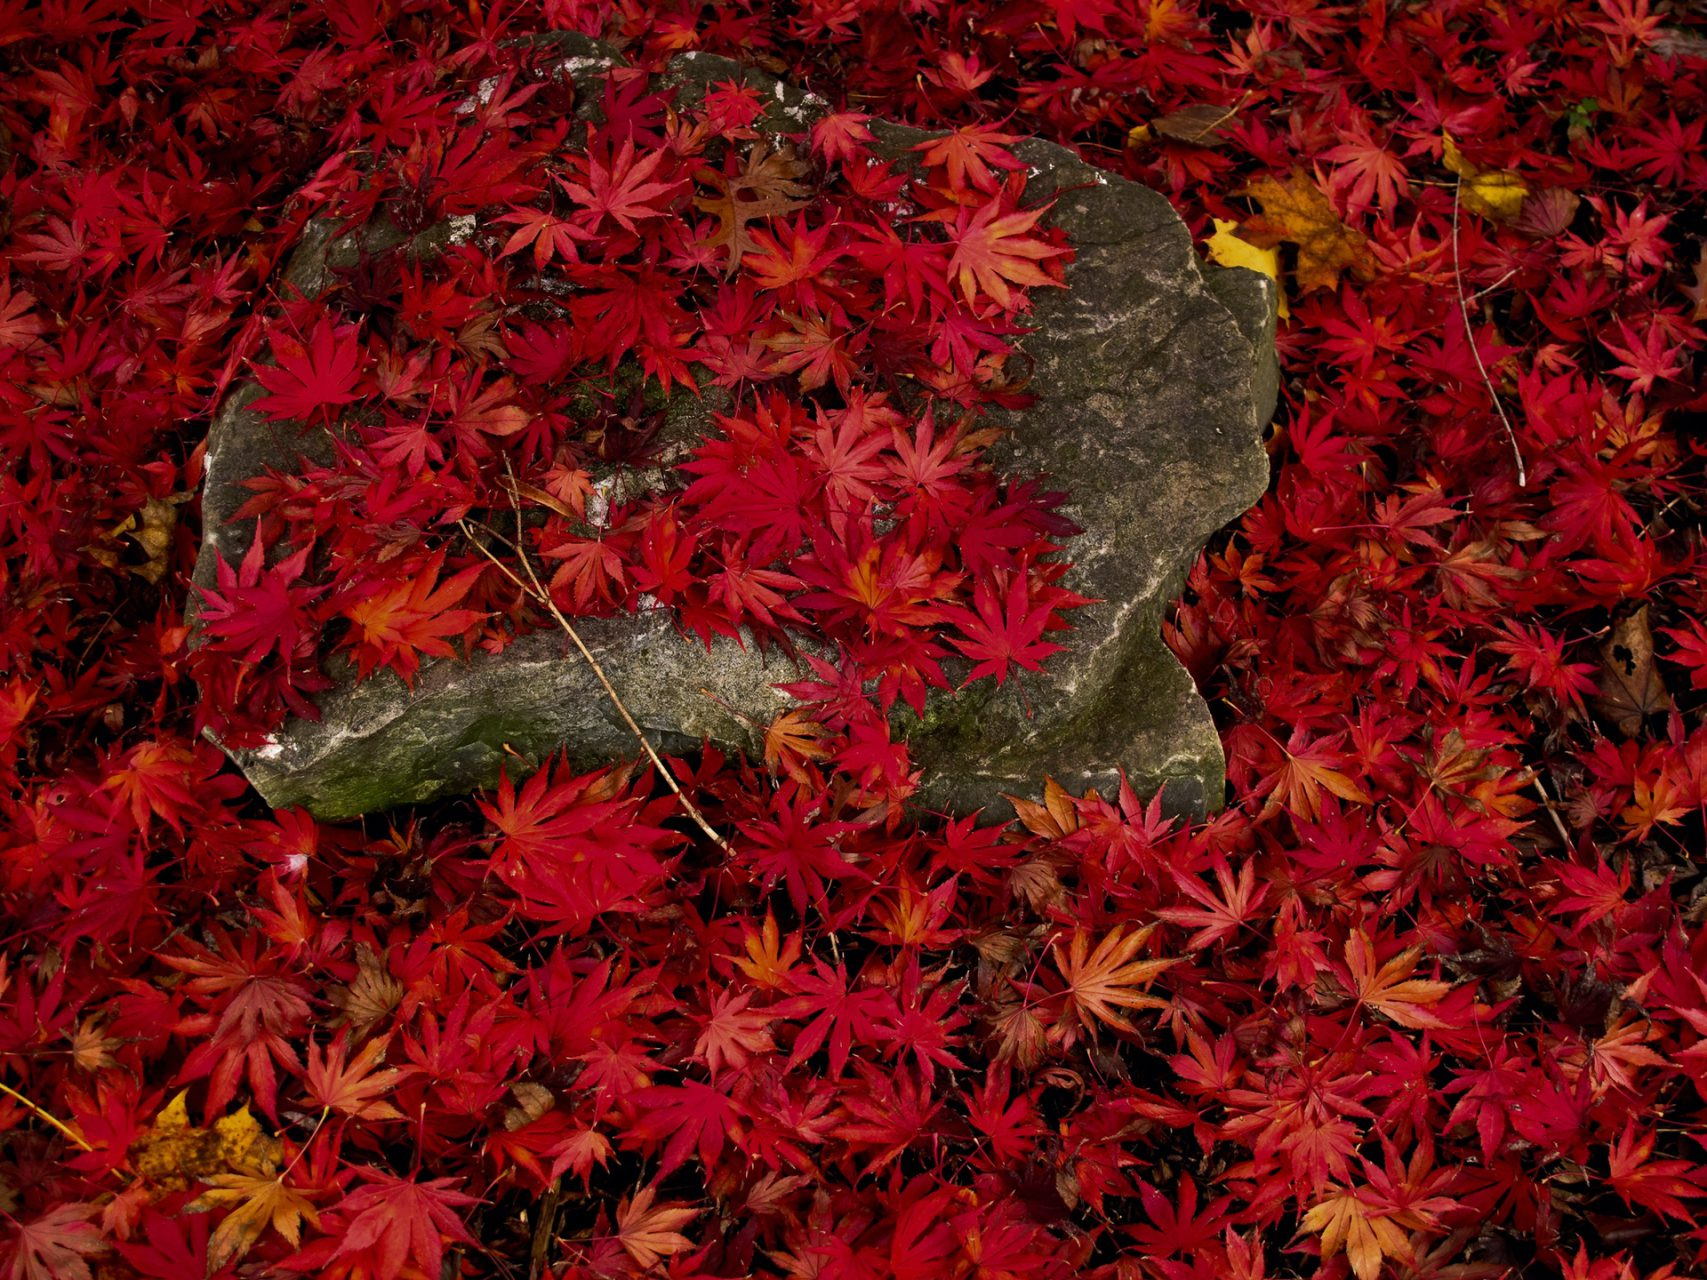 Japanese Maple Leaves on a Stone